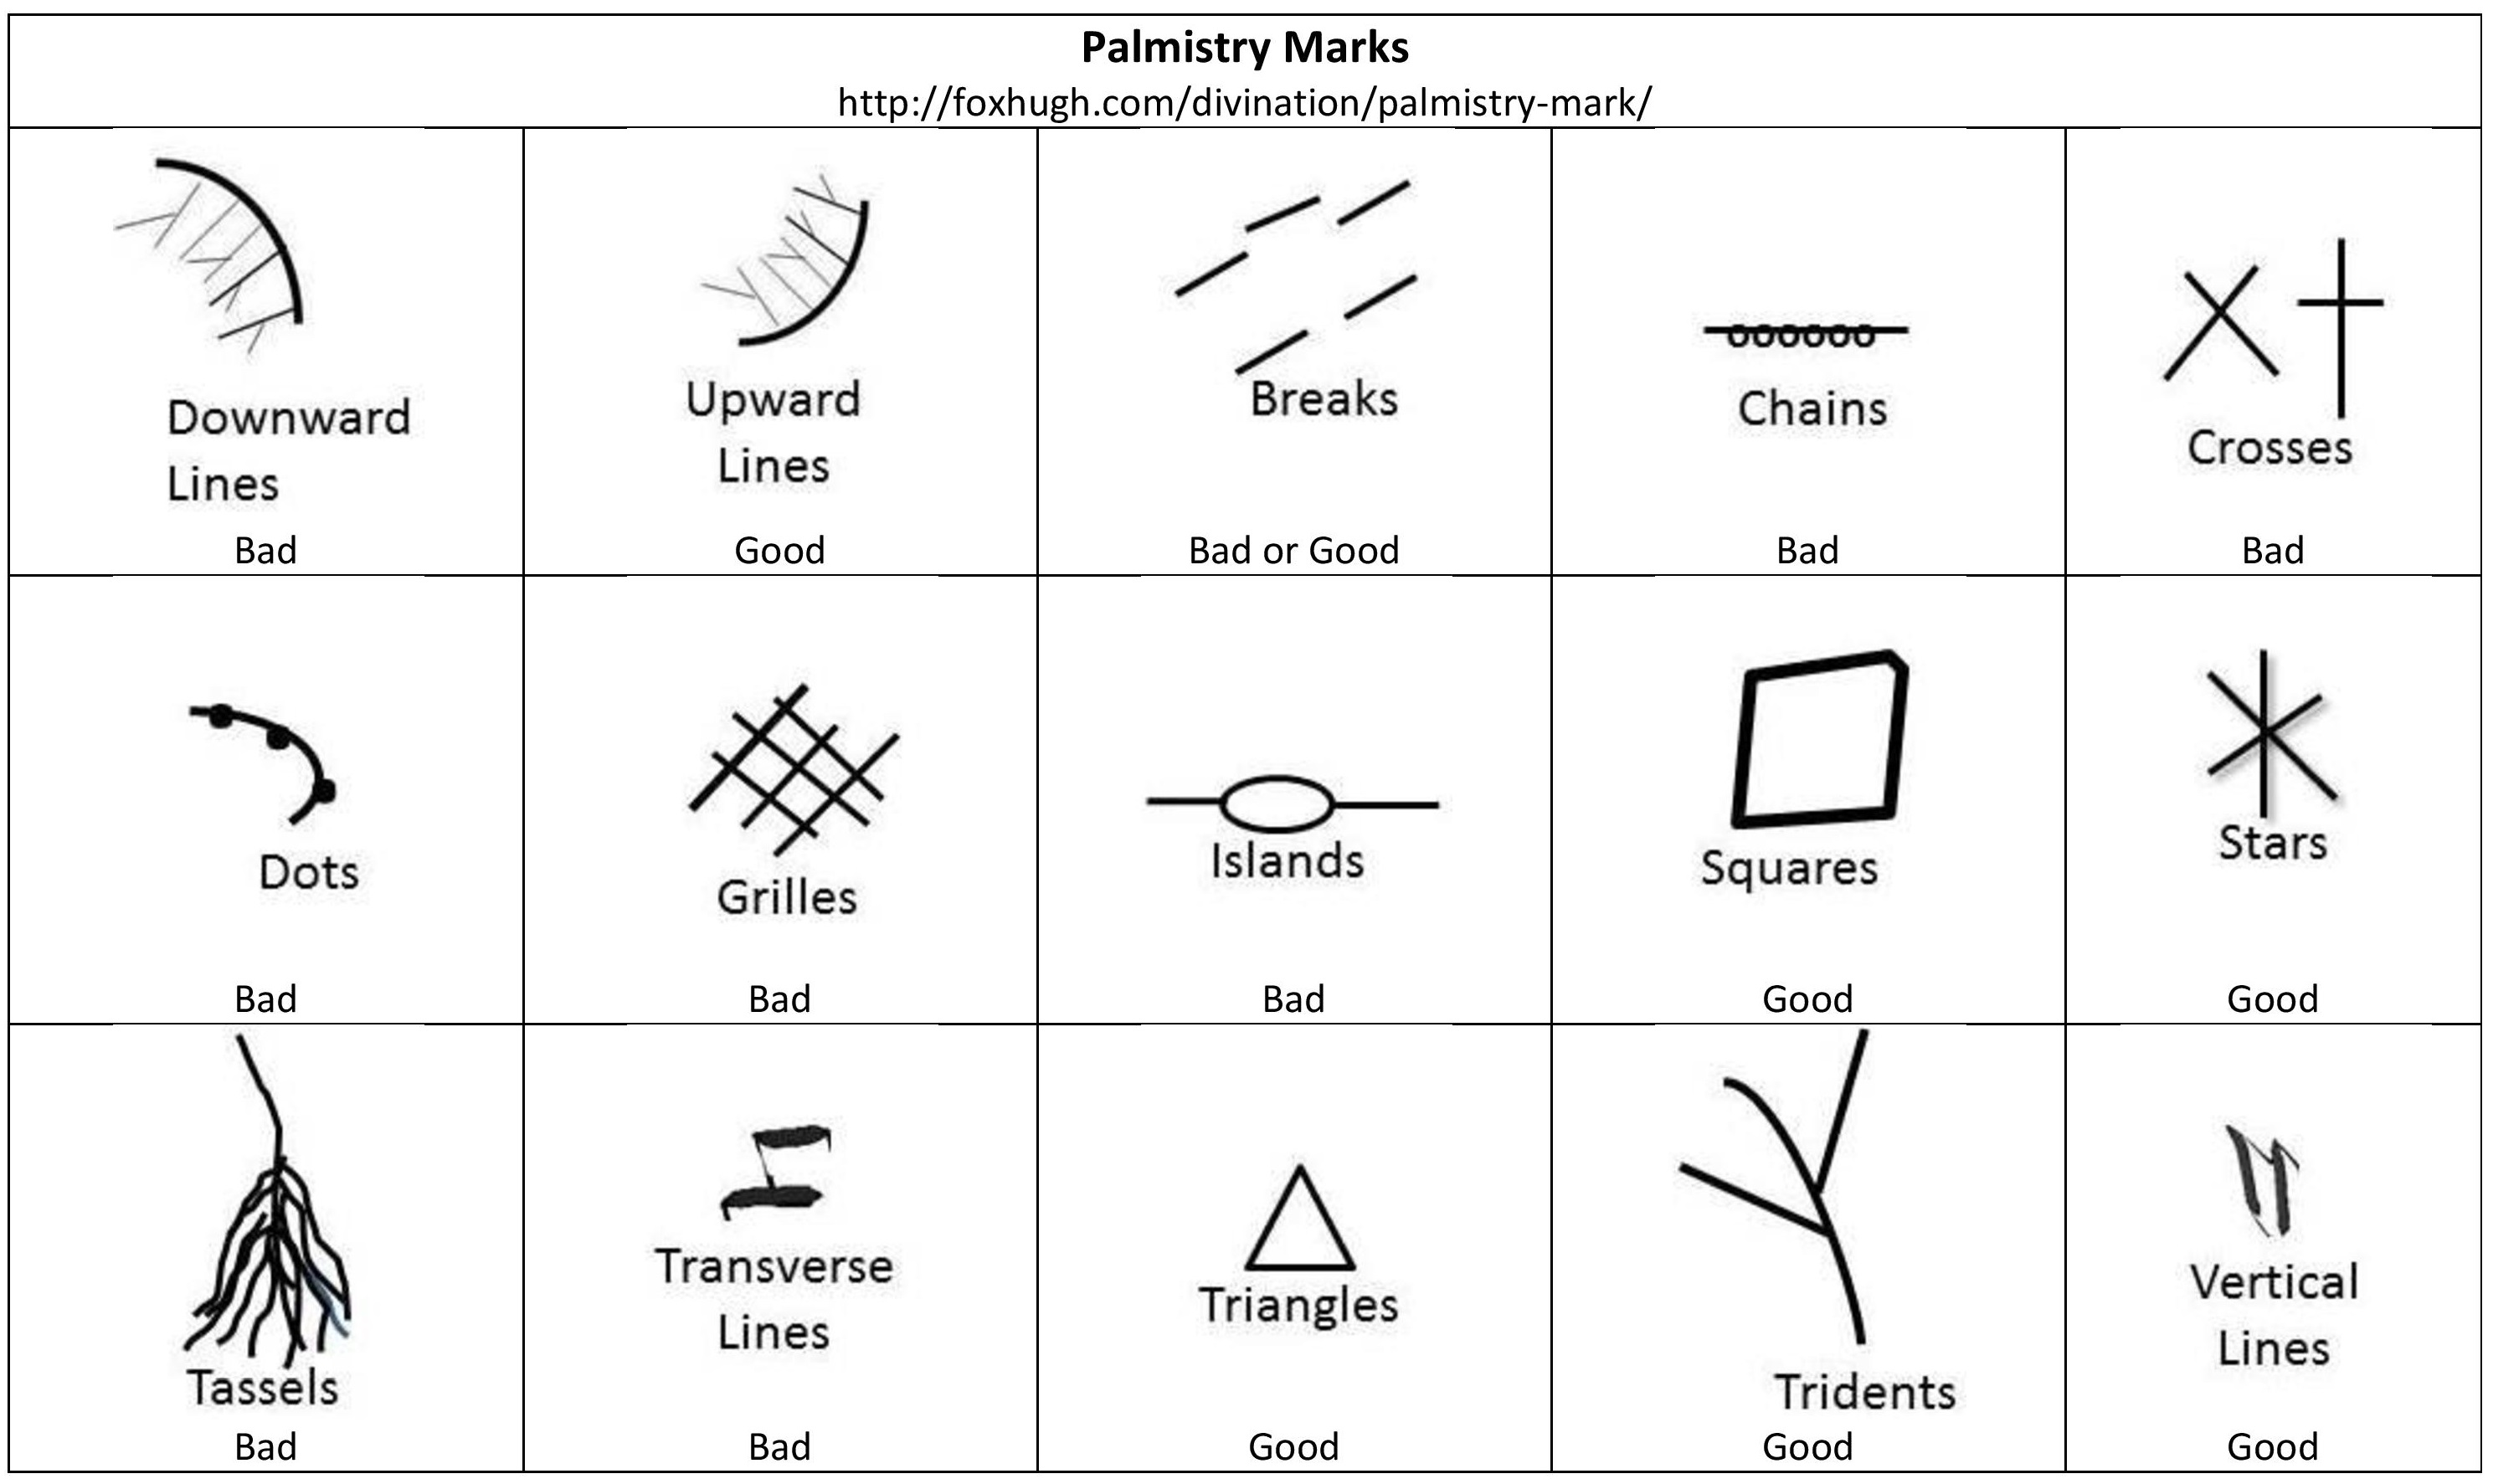 Different Kinds Of Lines In Art And Their Meanings : Palmistry marks hugh fox iii